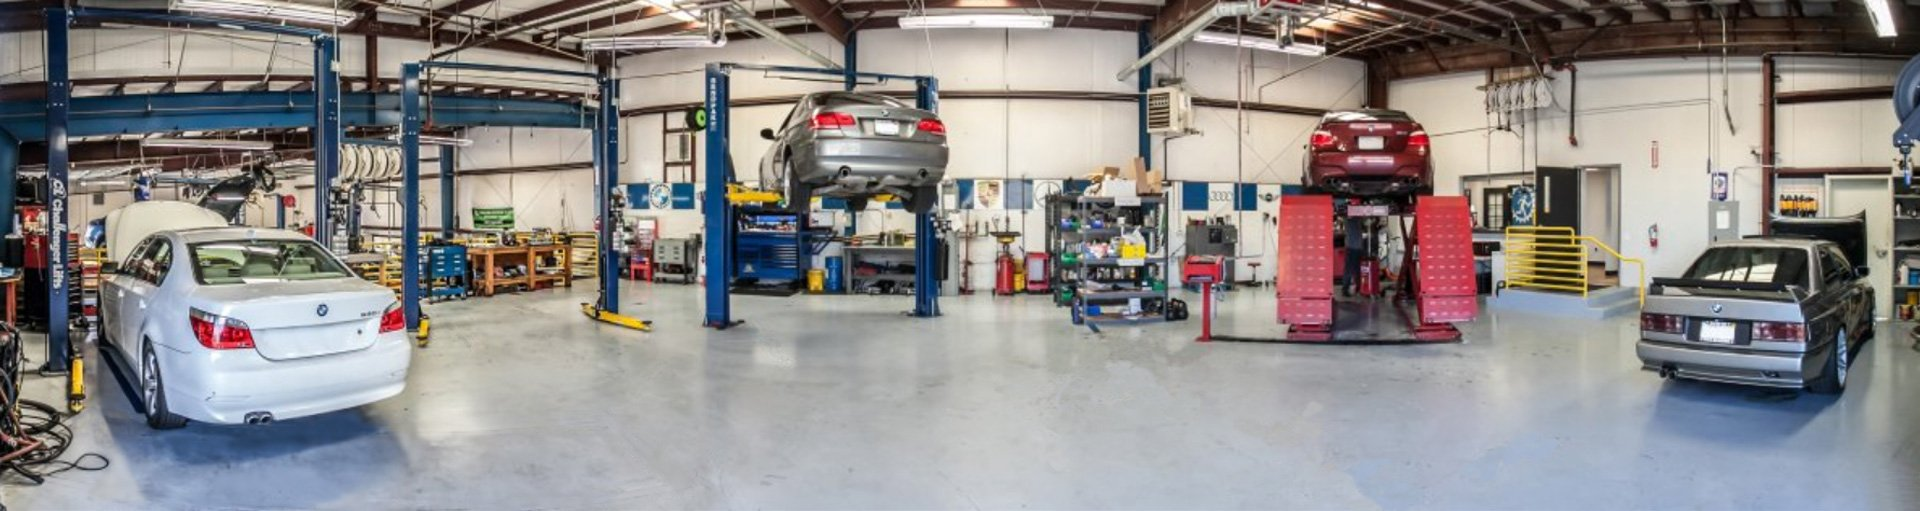 Panoramic View of Ryan GMW Auto Repair Shop